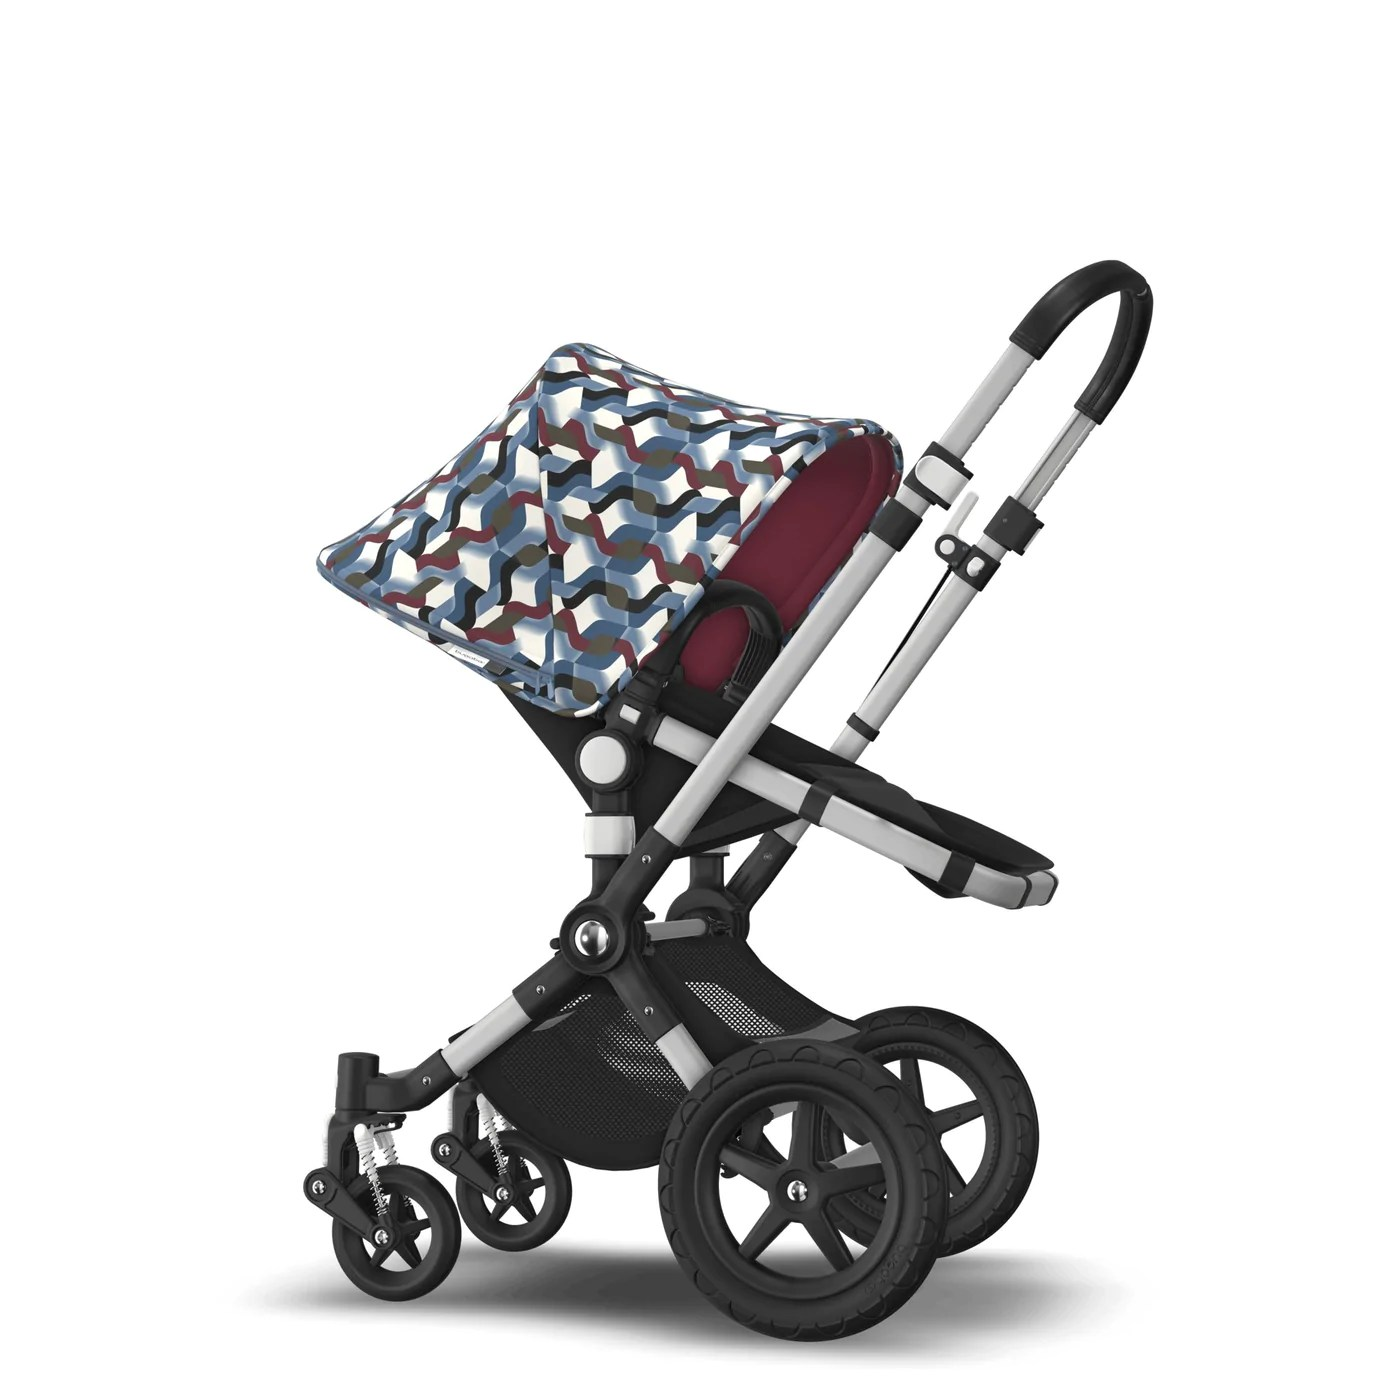 Bugaboo Cameleon 3 Maximum Weight Bugaboo Cameleon3 Plus Custom Stroller